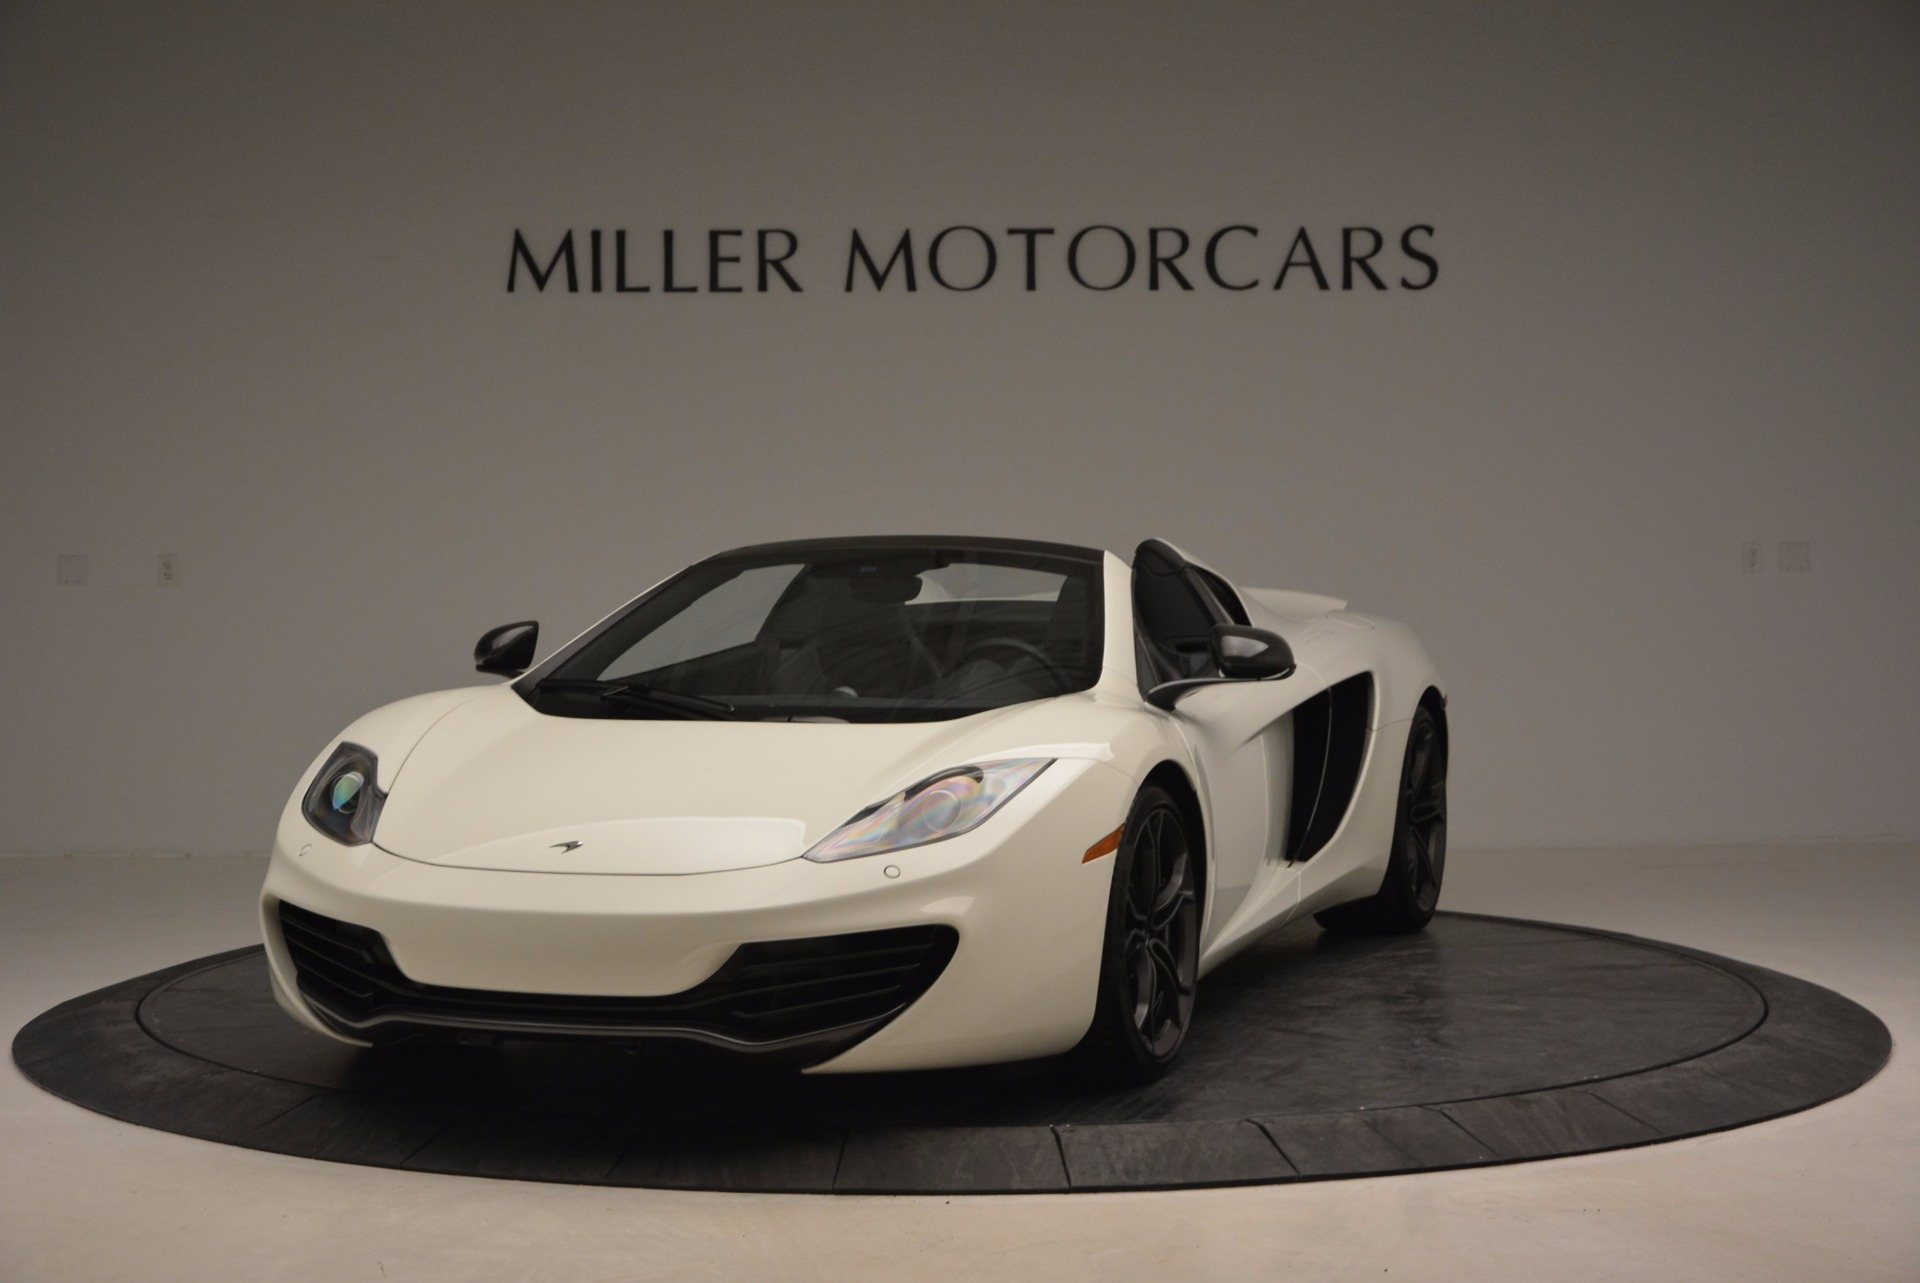 Used 2014 McLaren MP4-12C Spider For Sale In Greenwich, CT. Alfa Romeo of Greenwich, 3136 908_main